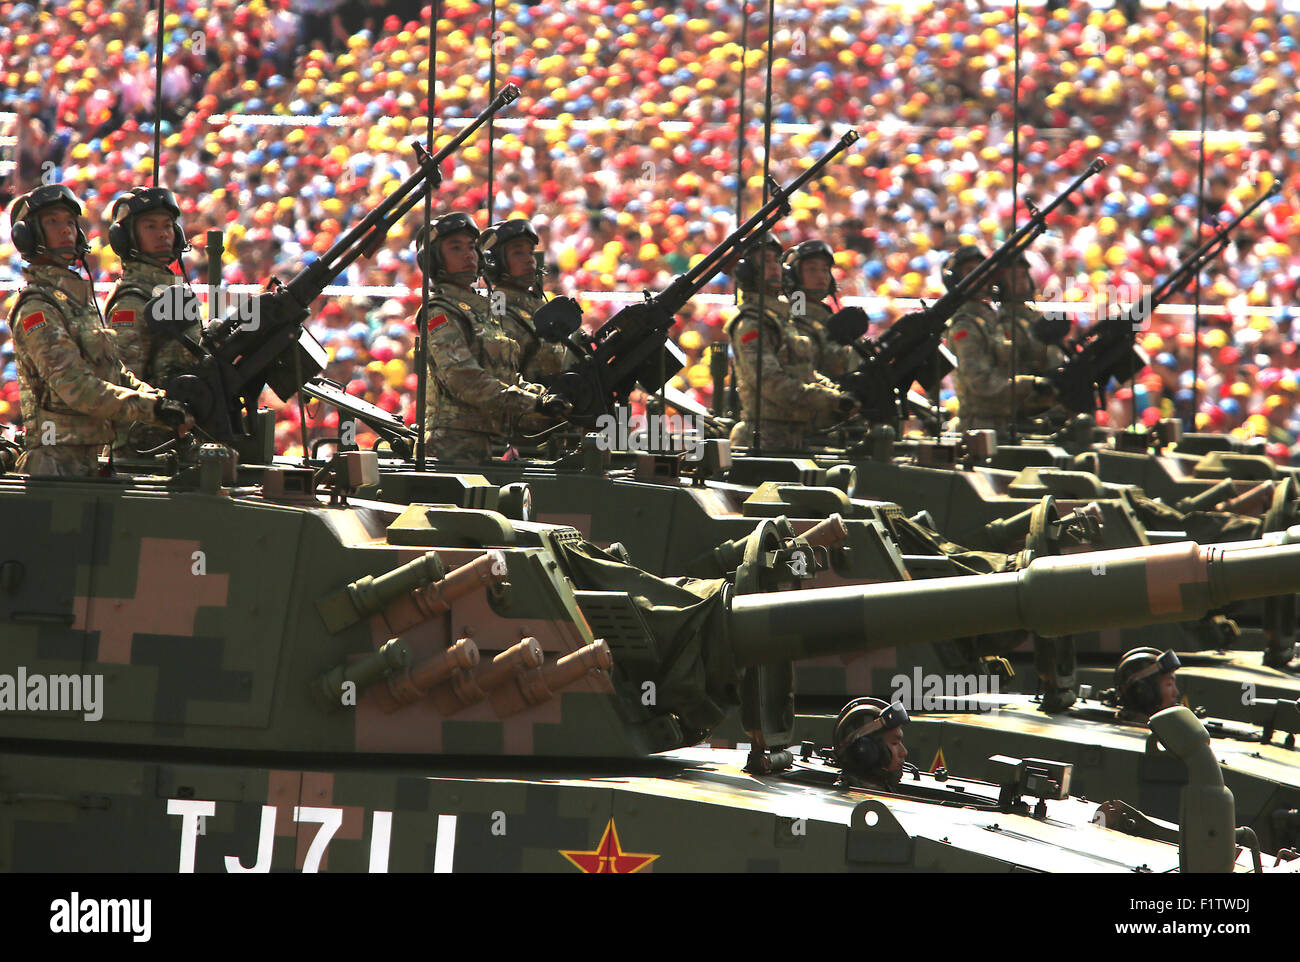 Sept. 3, 2015 - Beijing, CHINA - Over 12,000 soldiers and hundreds of tanks, ballistic missile launchers, amphibious - Stock Image